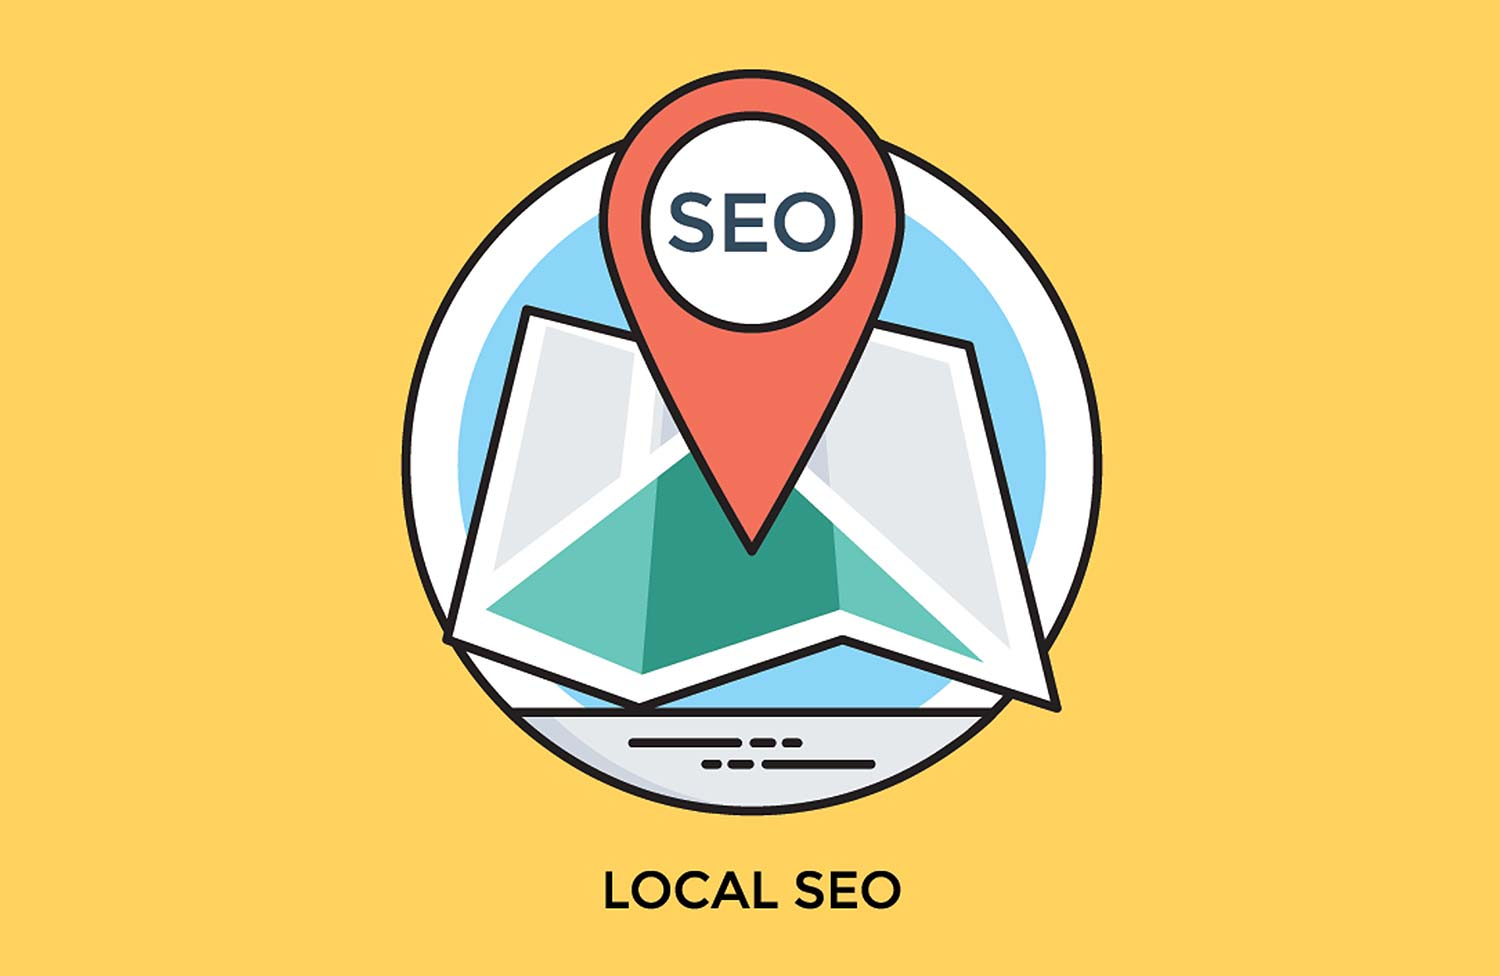 Business Local SEO Guide for 2021